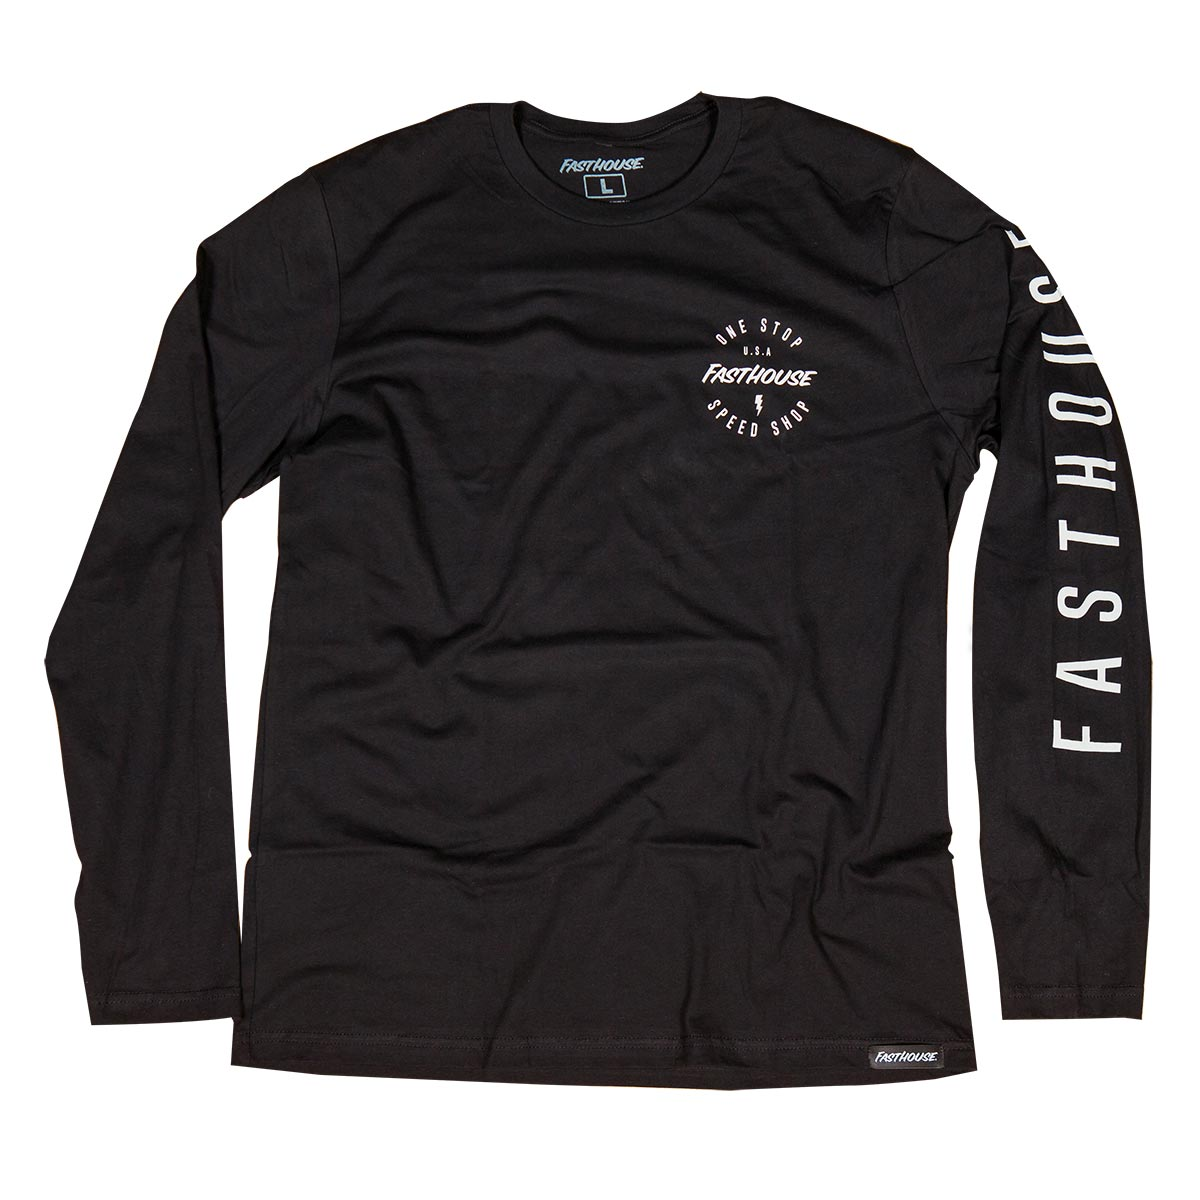 Simple LS Tee - Black